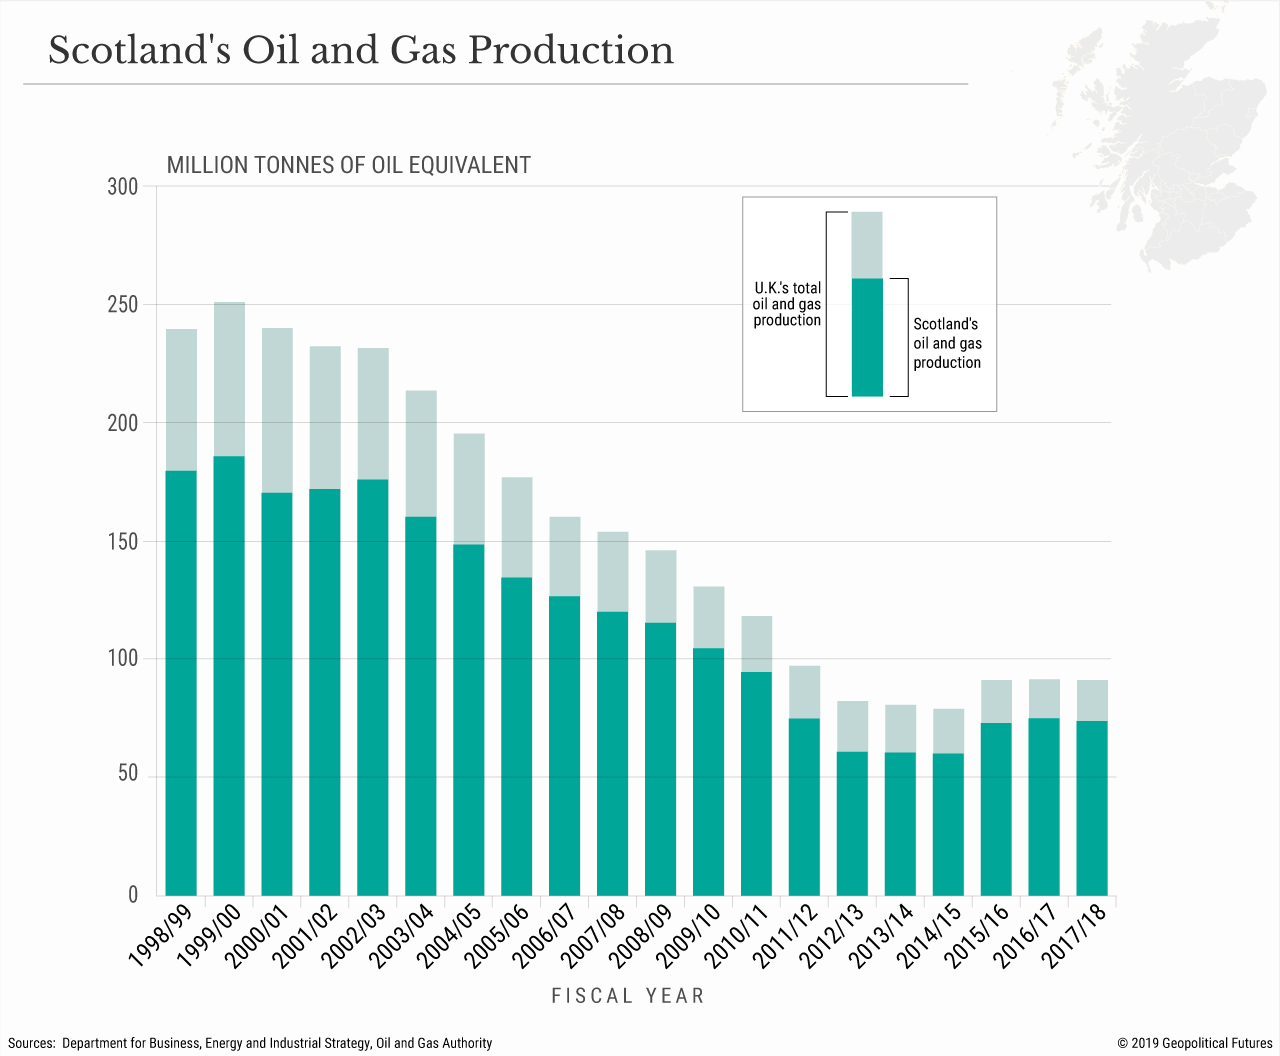 Scotland's Oil and Gas Production